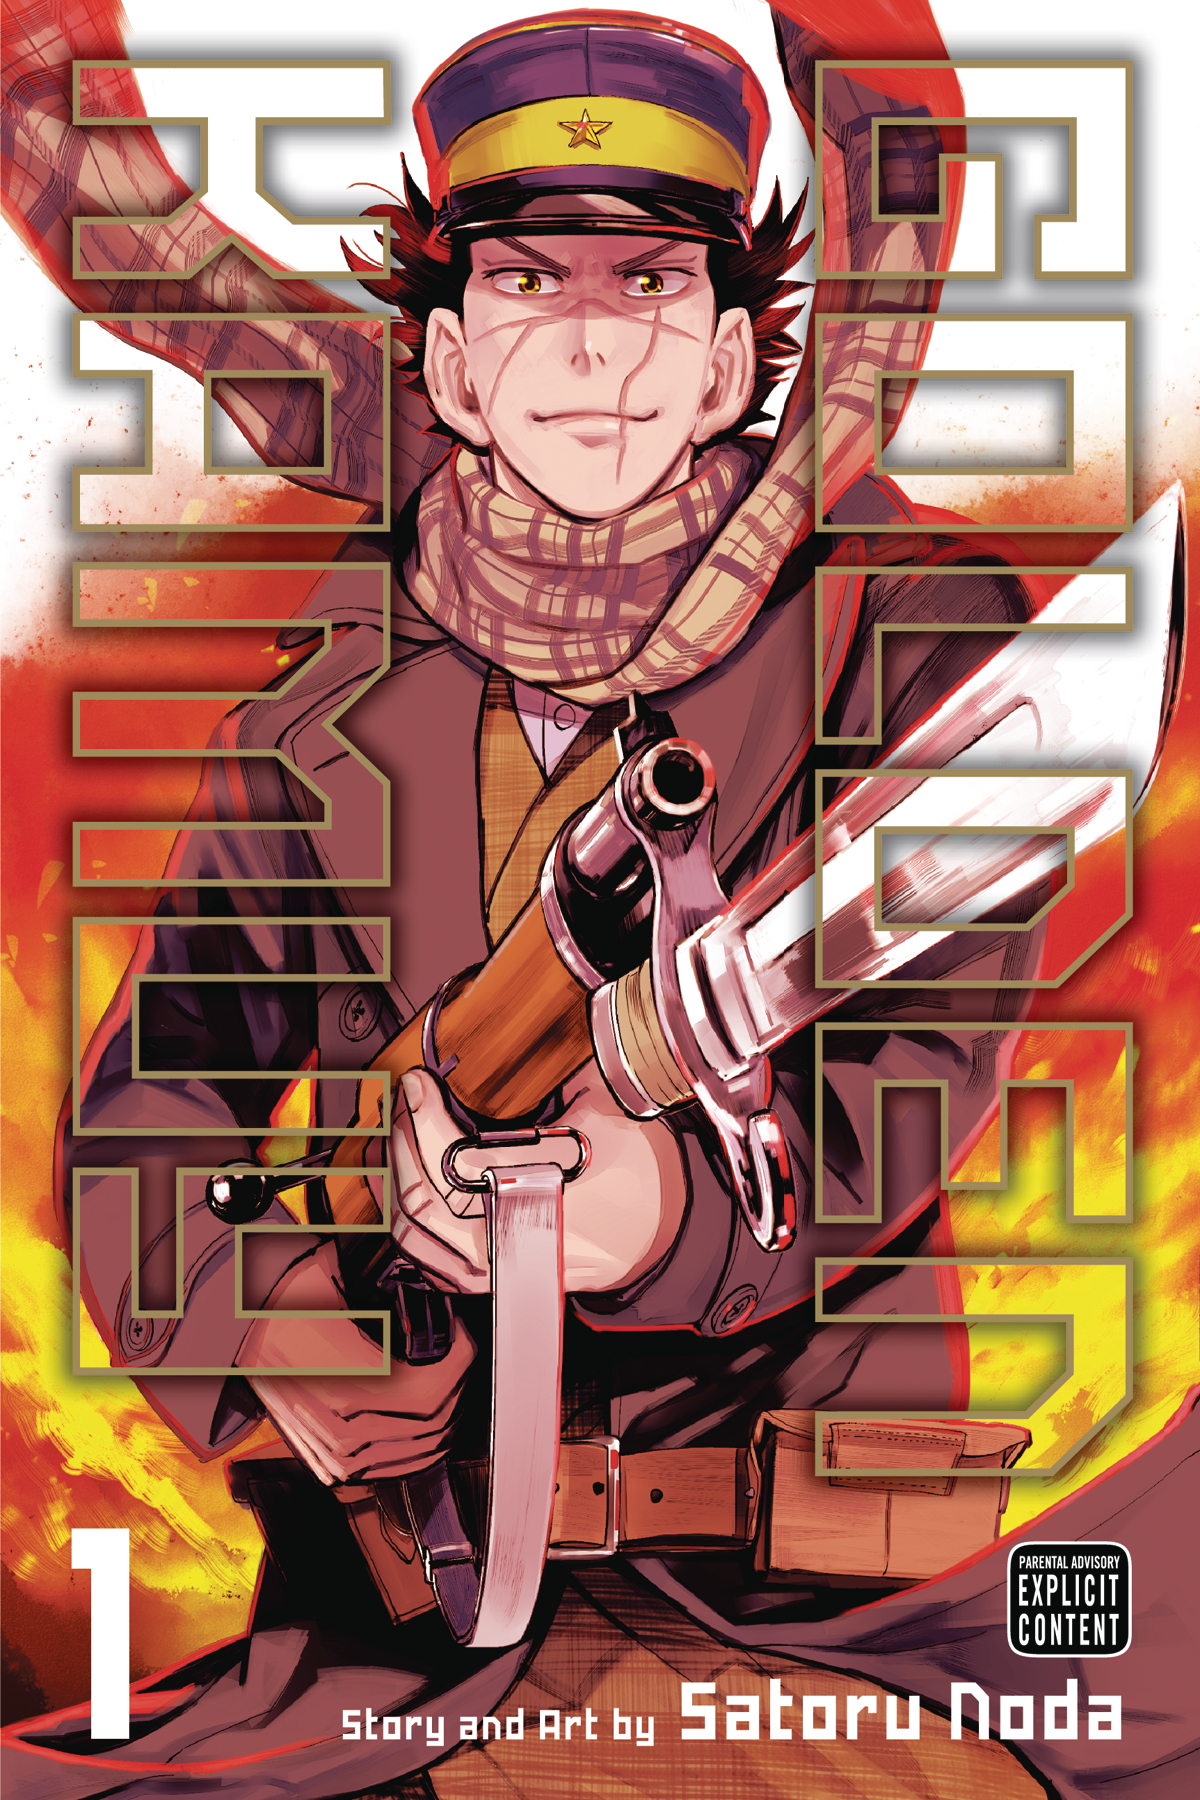 GOLDEN KAMUY GN VOL 01